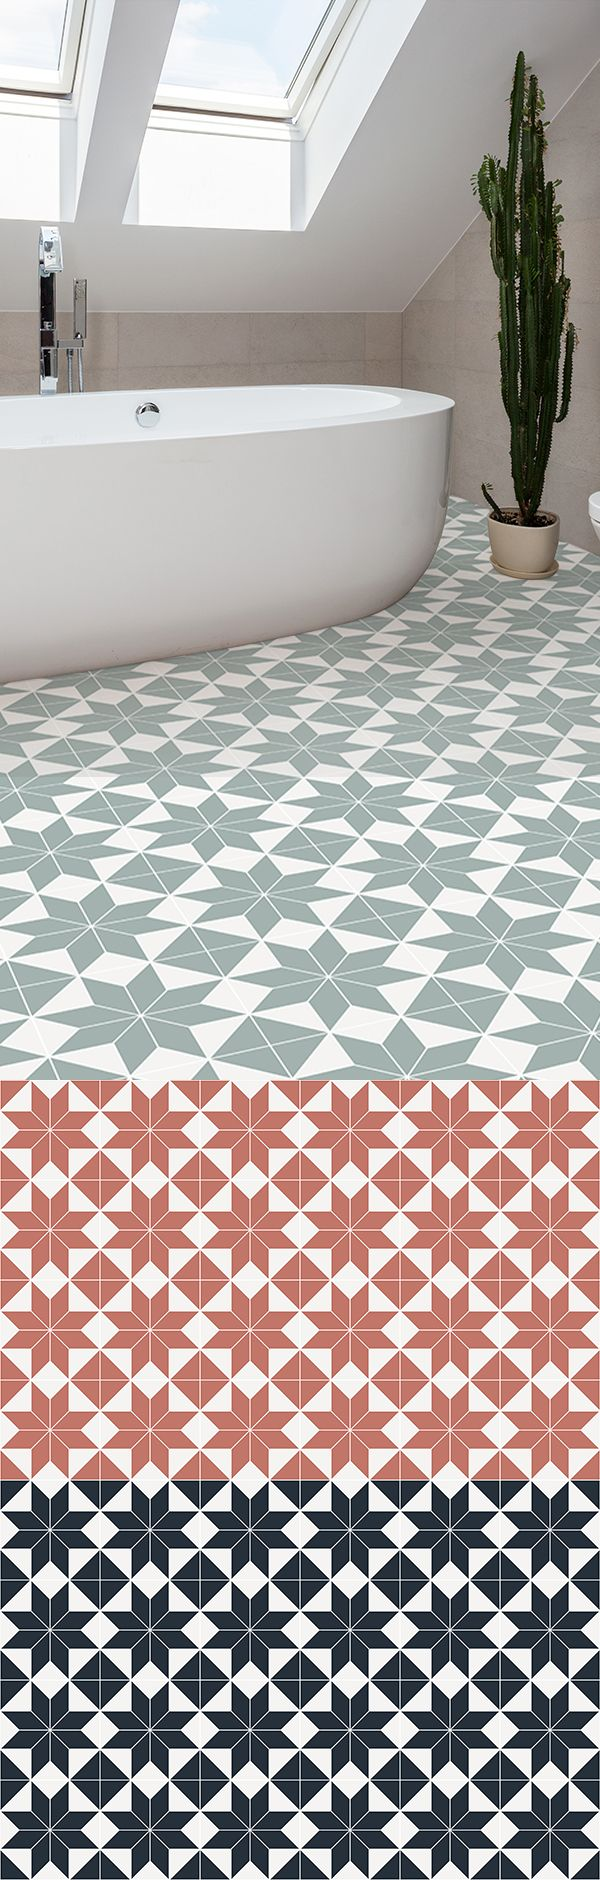 Brittany is a Victorian Tile Effect Vinyl Flooring design that is available in Navy, Orange and Light Green. The chunky geometric tile pattern of this design makes for a modern take on classic Victorian tiles, resulting in a perfect flooring option for contemporary and traditional home styles. #vinyl #flooring #inspiration #design #decor #home #homedecor #interior #interiordesign #Ihavethisthingwithfloors #tiles #tiledvinyl